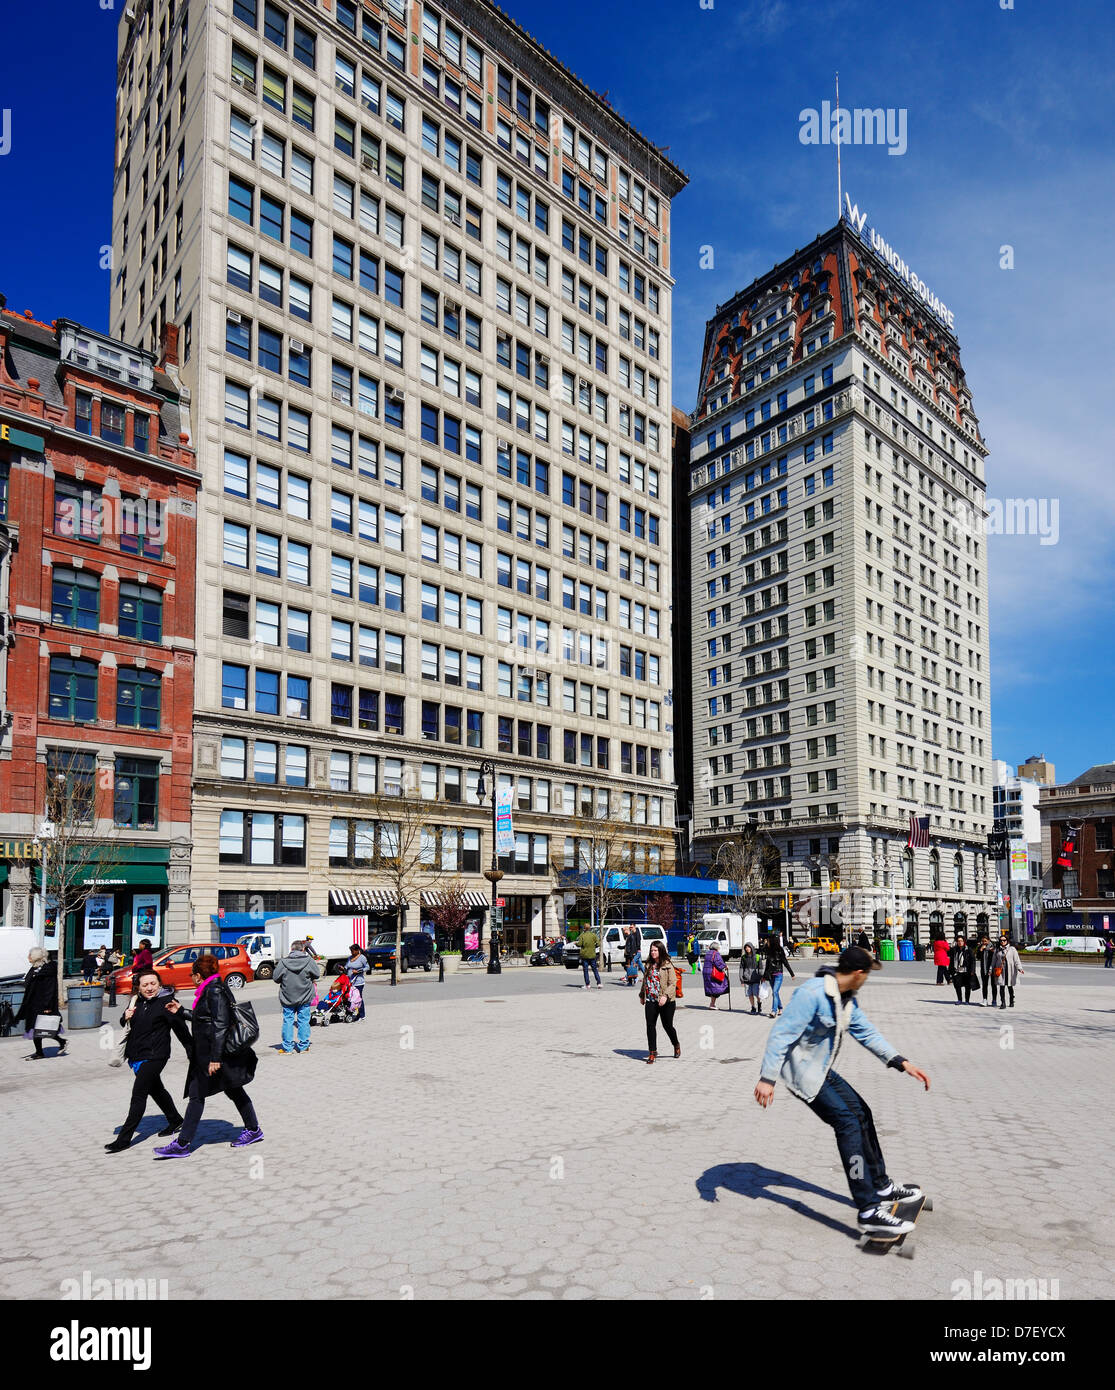 Northend of Union square in New York City - Stock Image